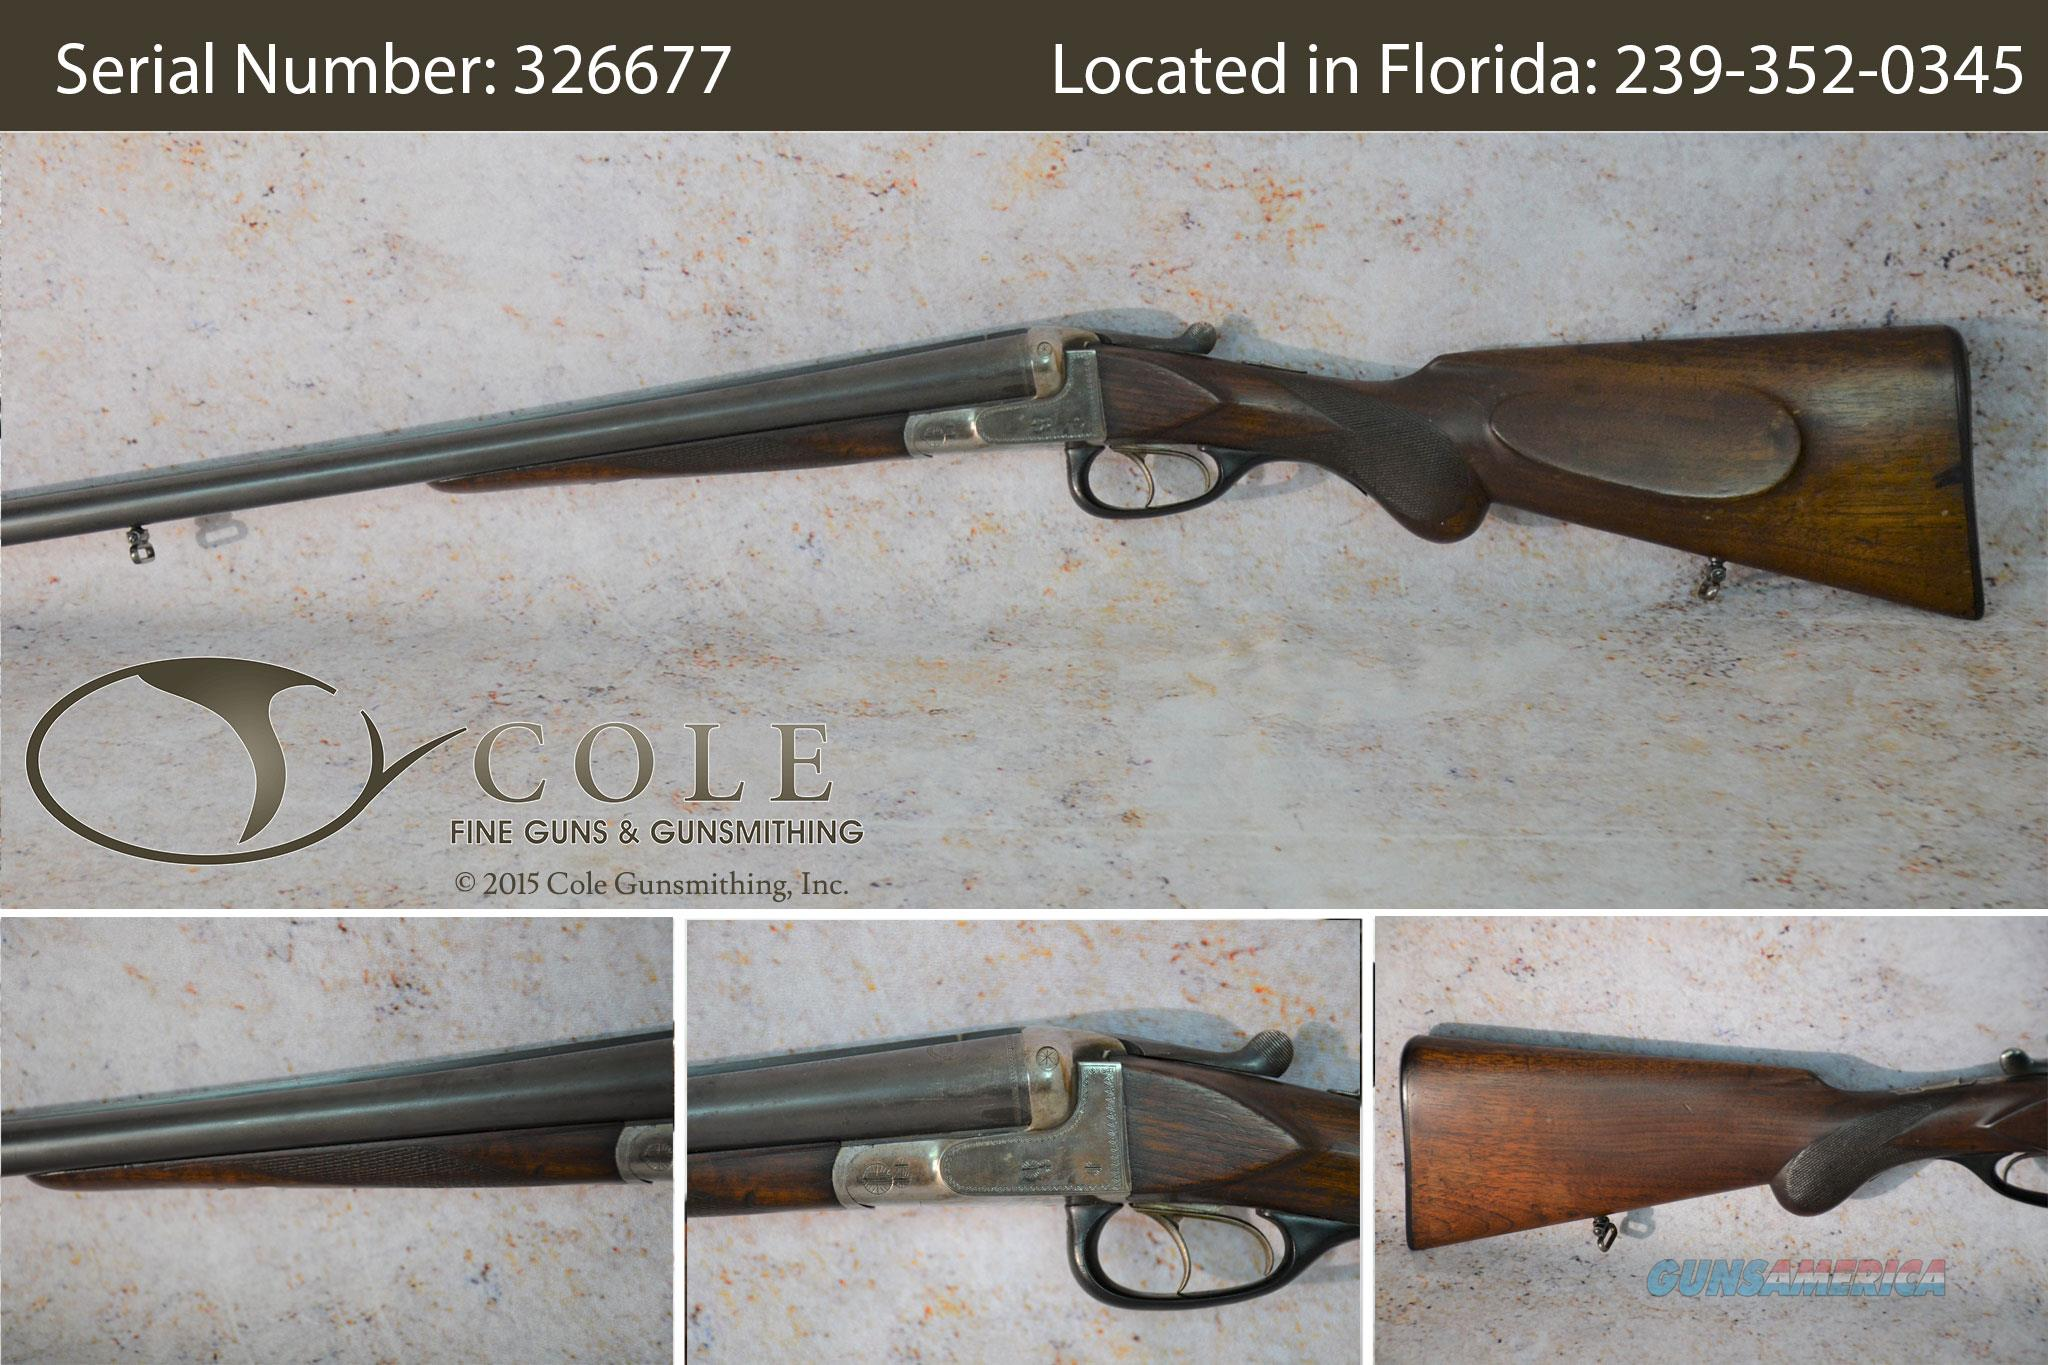 "Sauer & Sohn Ejector Model 12g 28.5"" Field Pre-Owned SN: 326677  Guns > Shotguns > S Misc Shotguns"